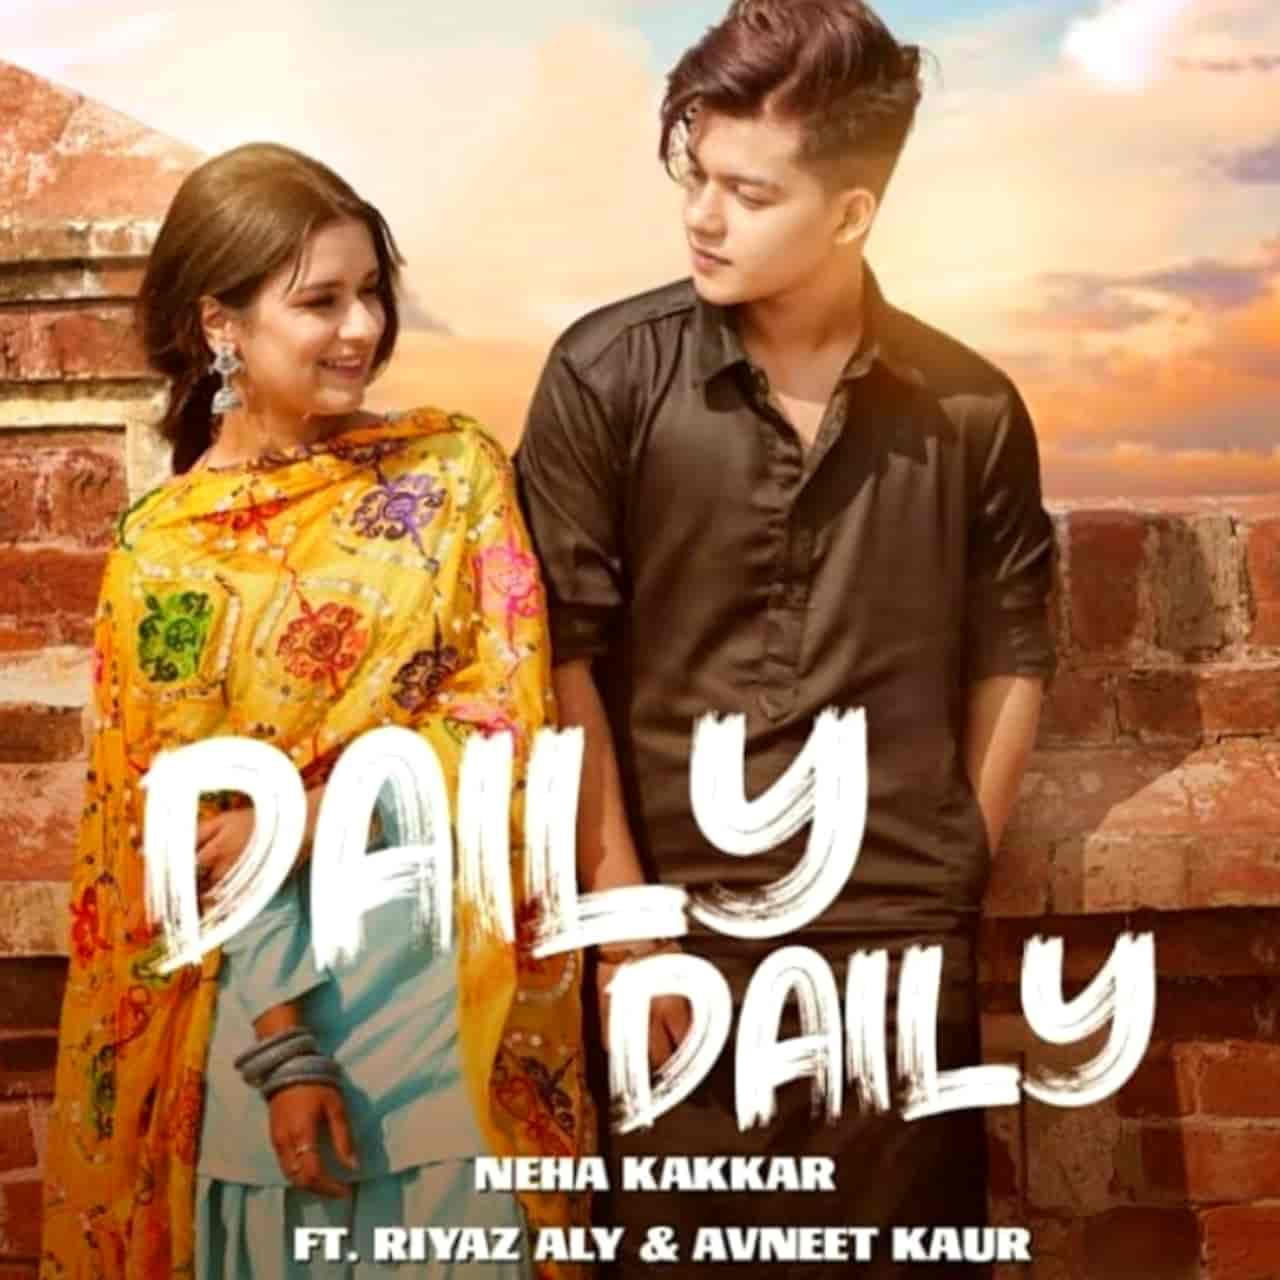 Daily Daily Punjabi Song Images By Neha Kakkar